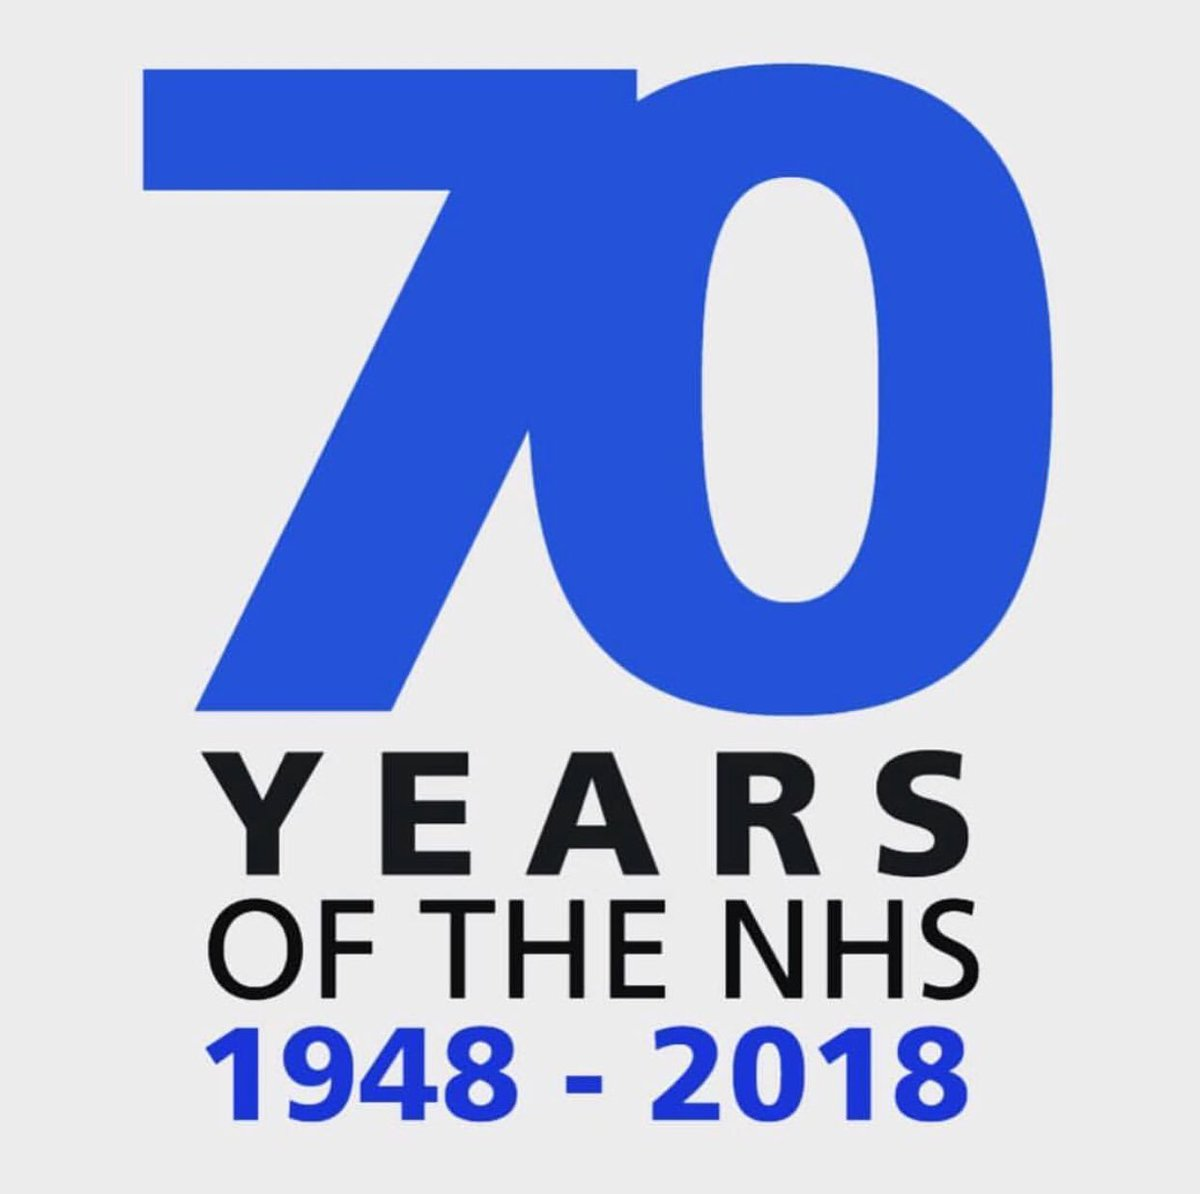 test Twitter Media - Happy 70th birthday to our wonderful NHS and congratulations to all the inspiring, courageous and incredible people who are a part of it! #NHS70 https://t.co/0vBsrqmonm